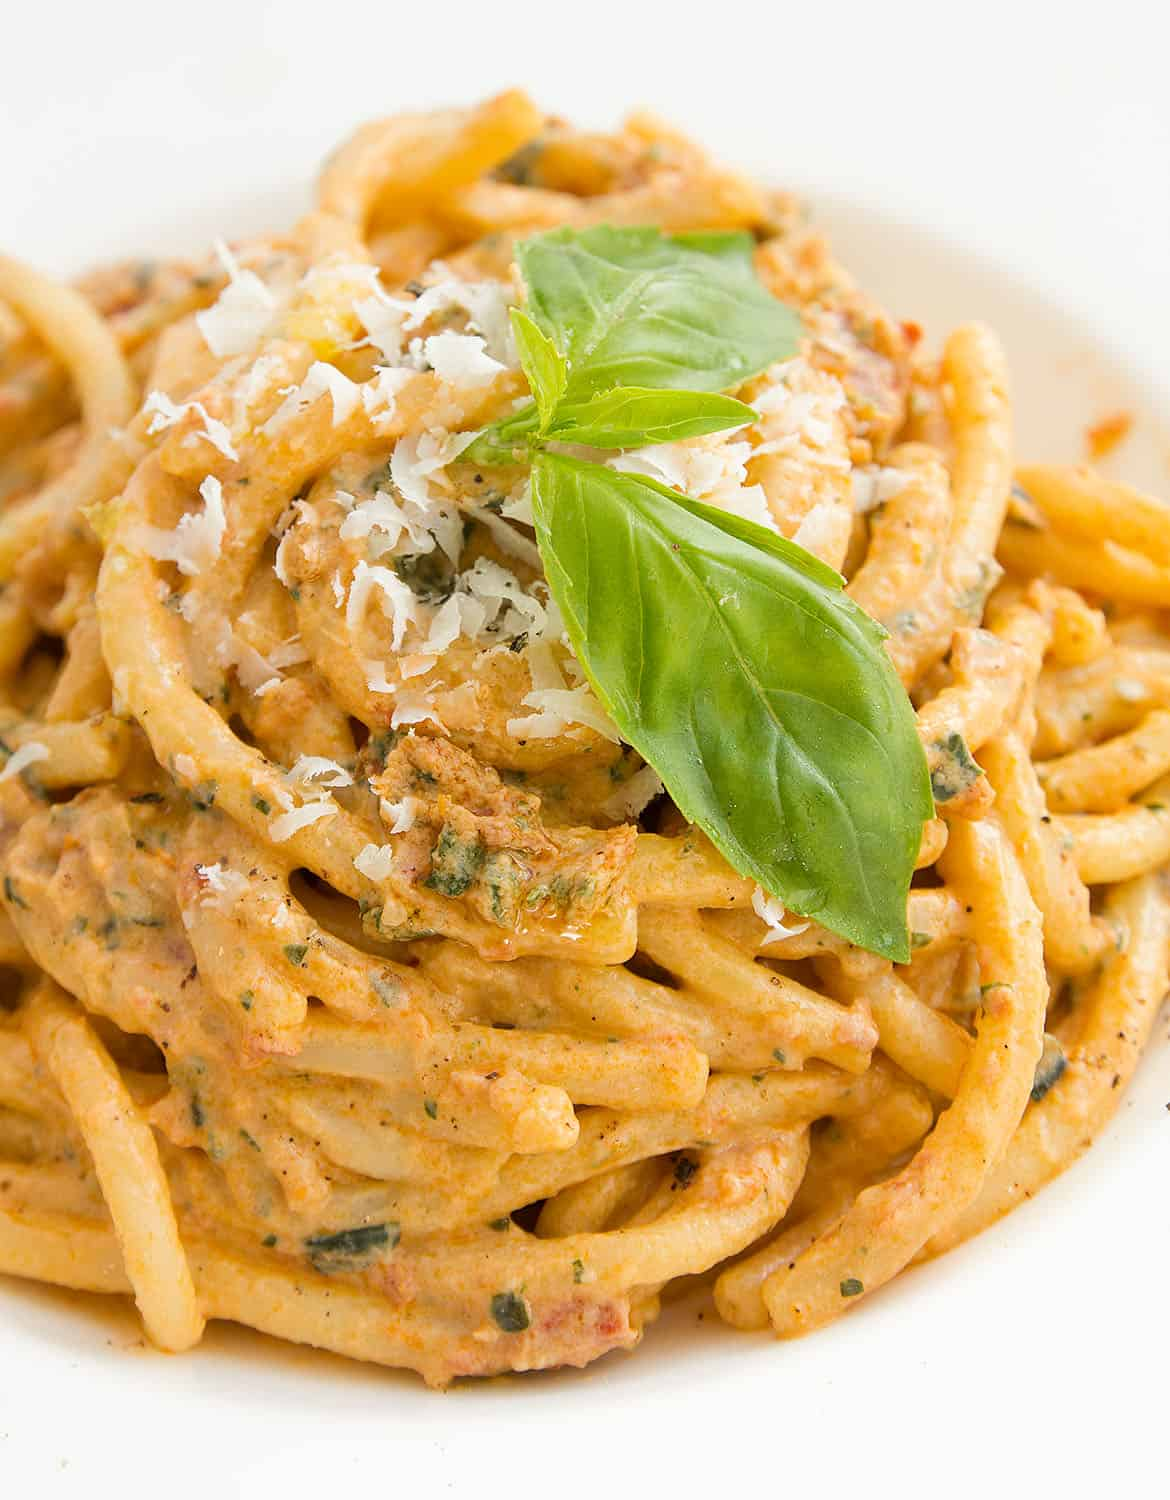 Sun dried tomato pesto pasta in a white plate with green basil leaves.